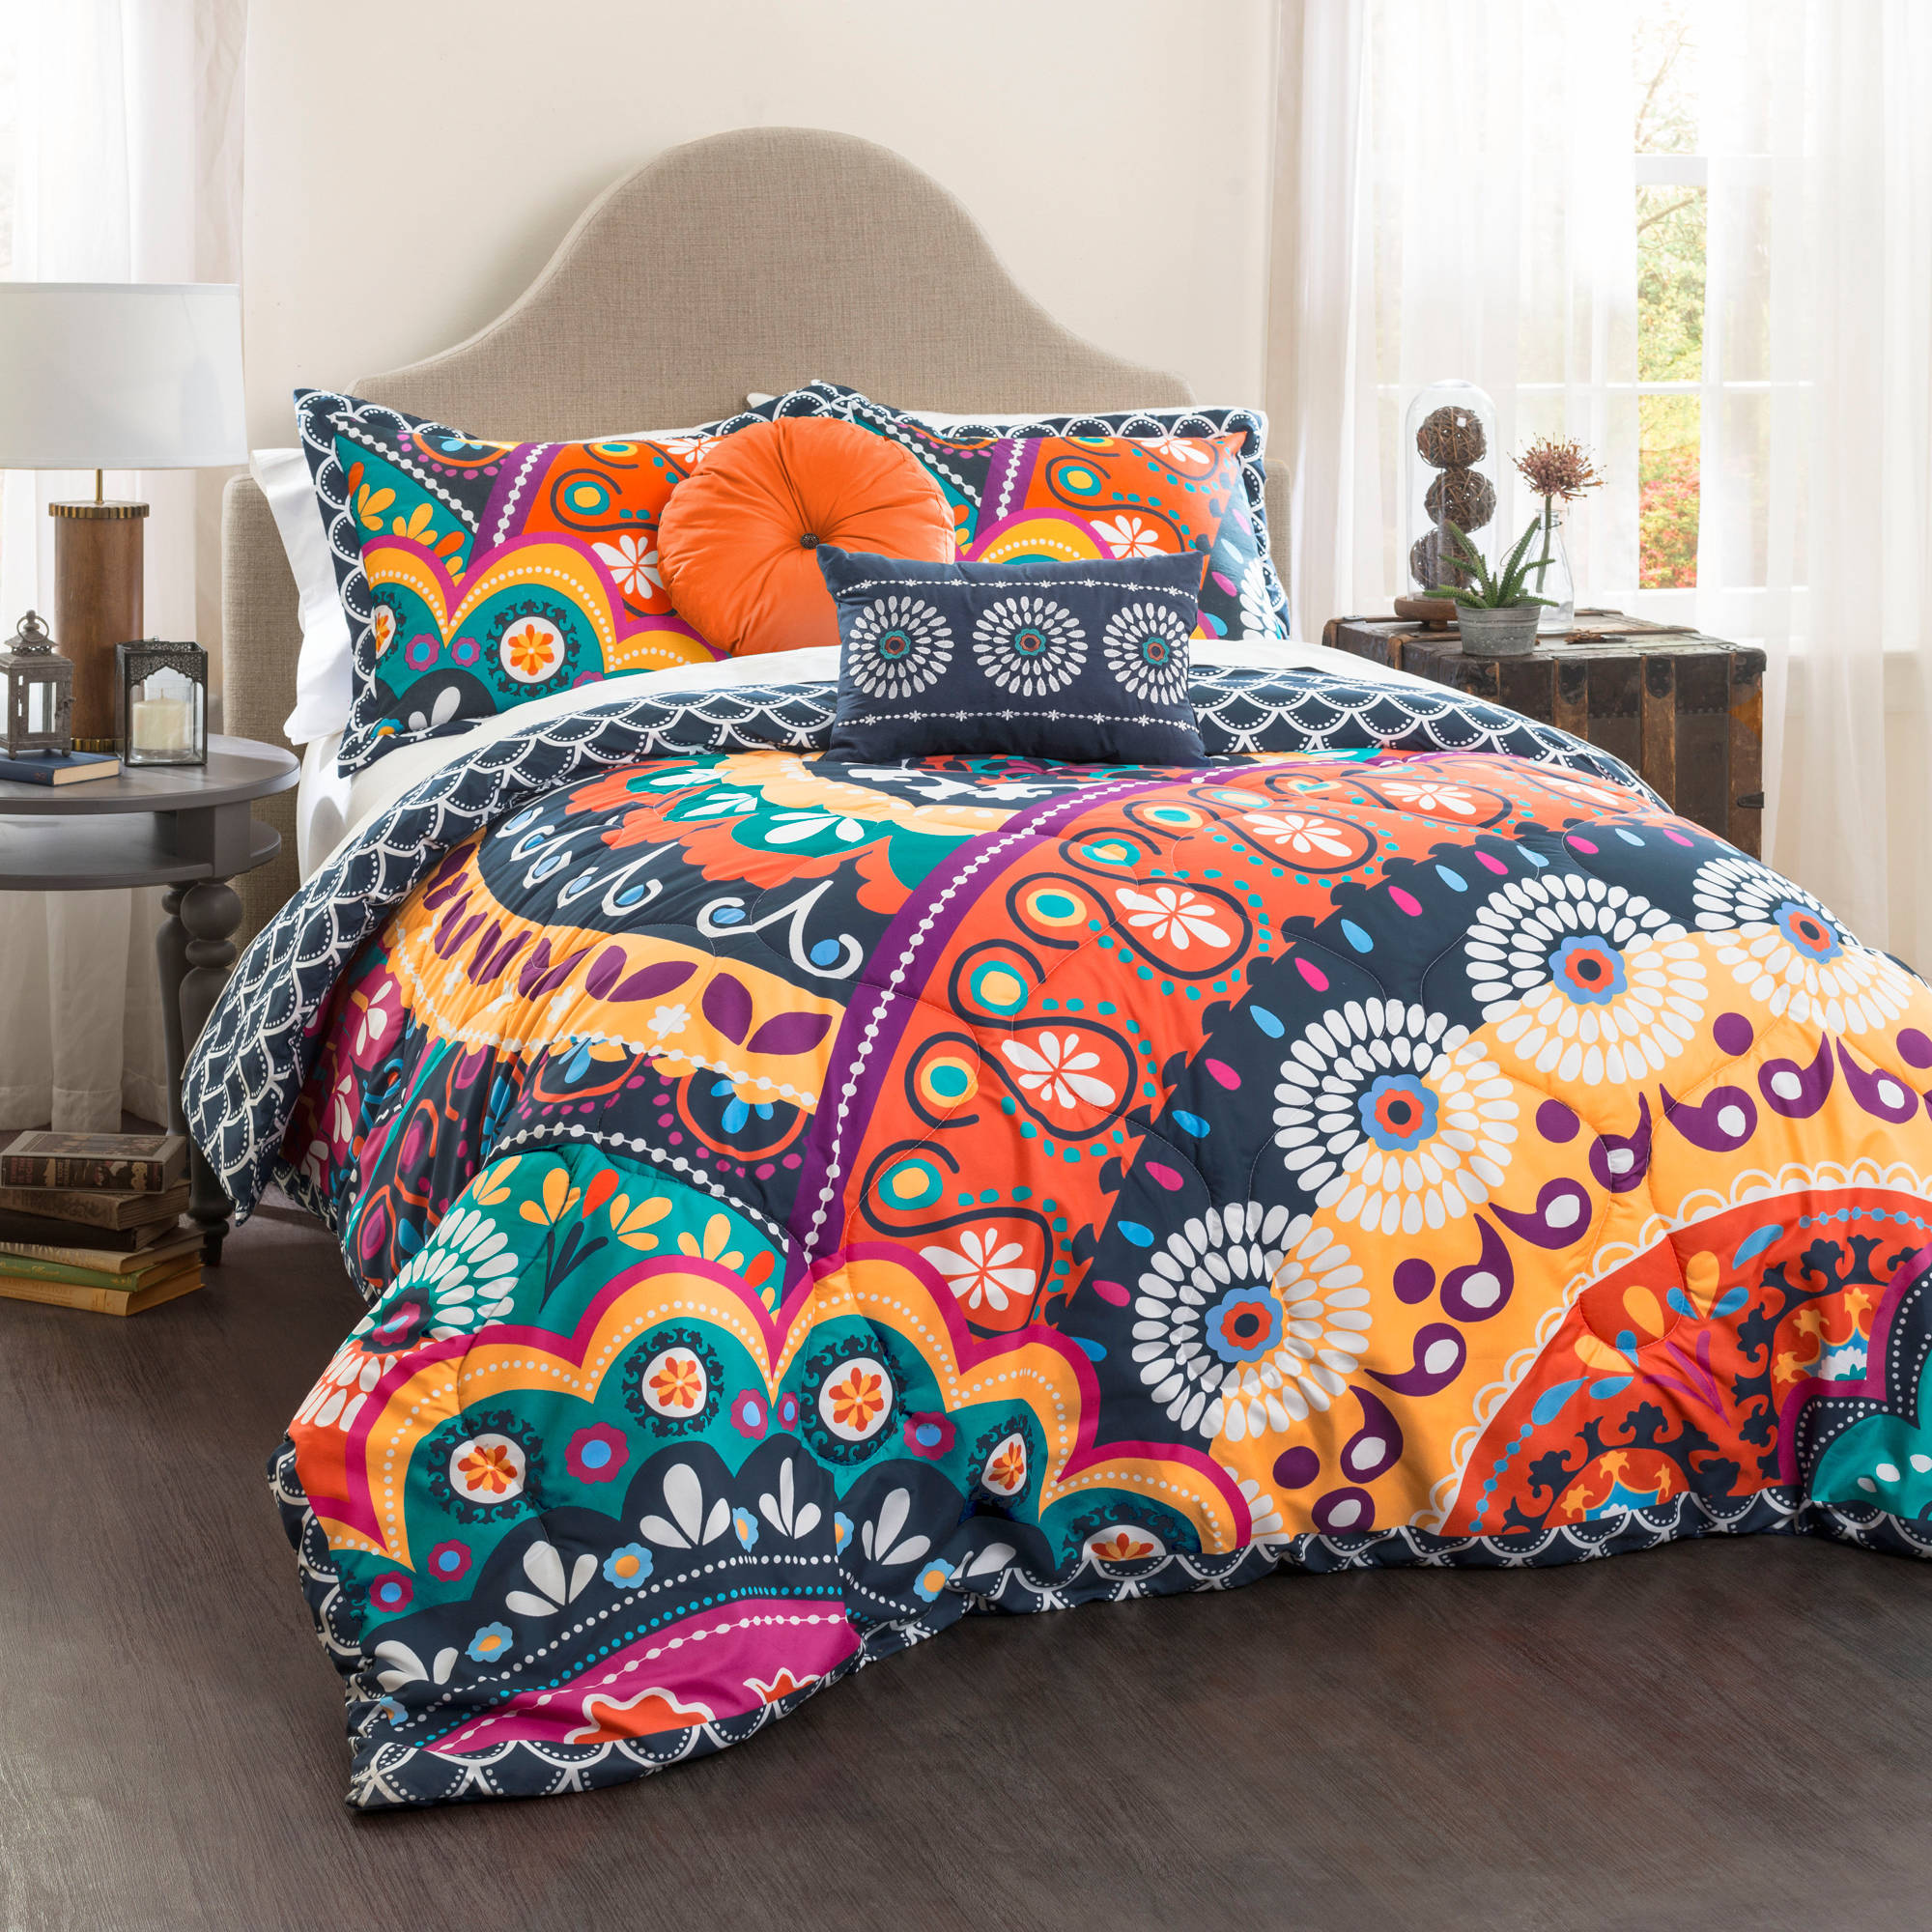 bedding pretty home comforter sets orange southwestern king